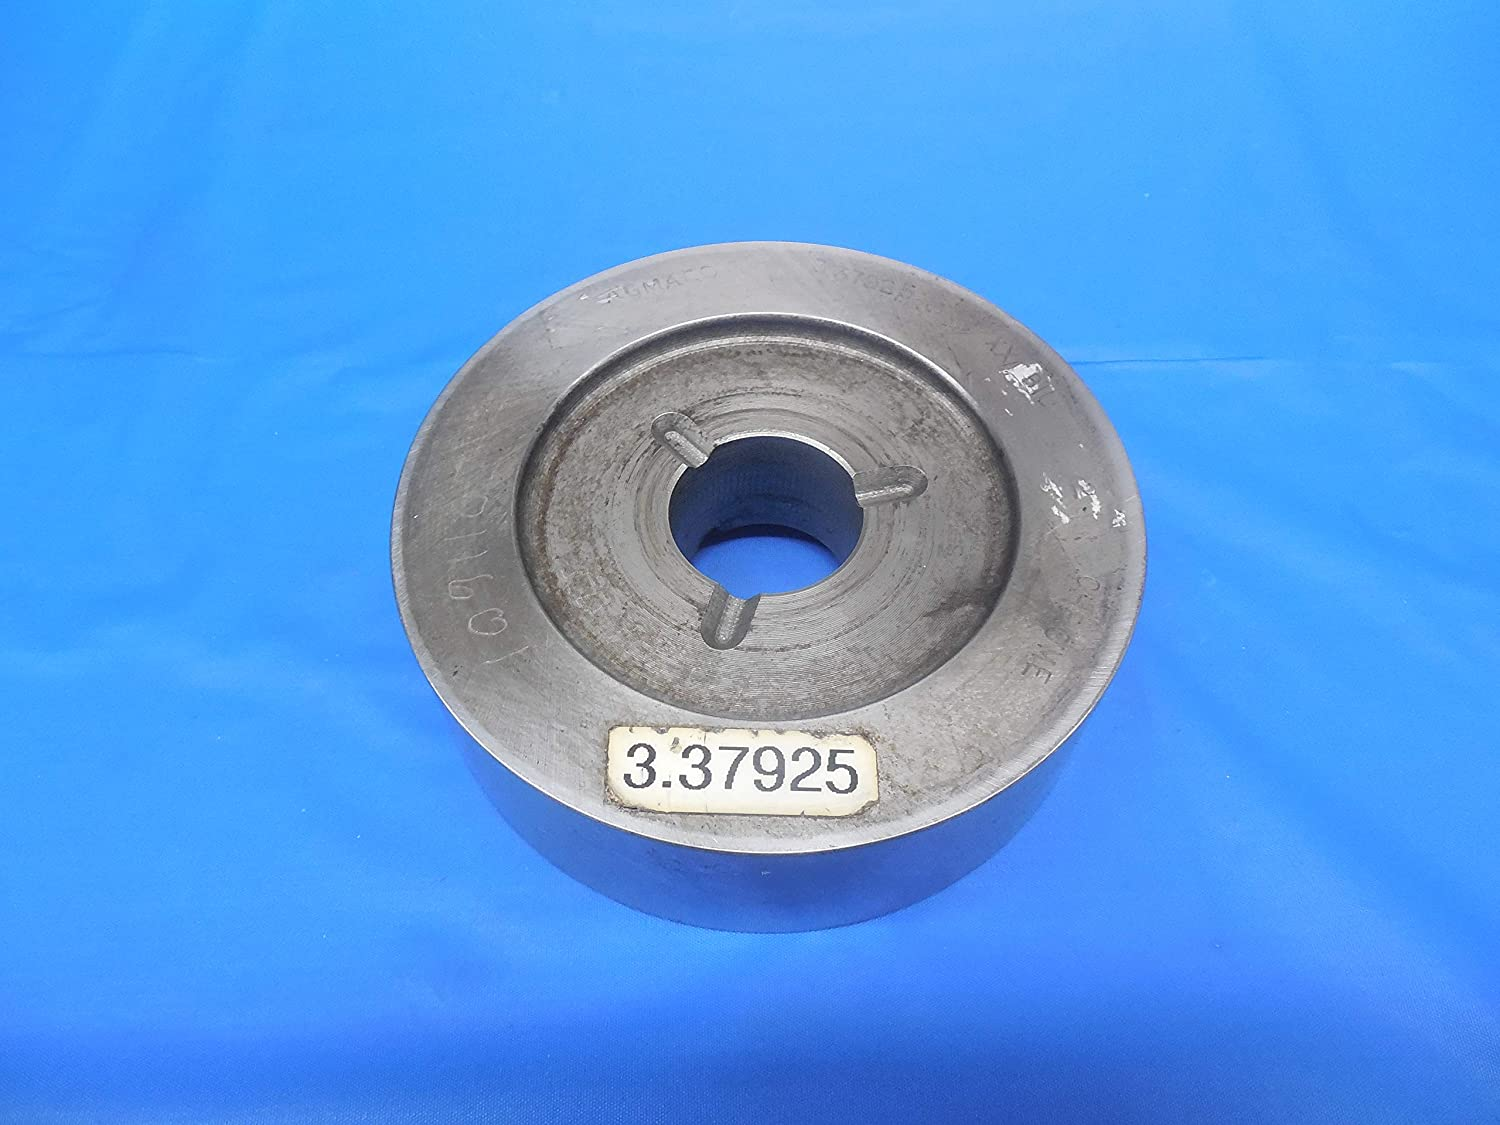 3.37925 Class XX Master Plain BORE Ring GAGE 3.3750 +.00425 Oversize 3 3/8 CL-XX